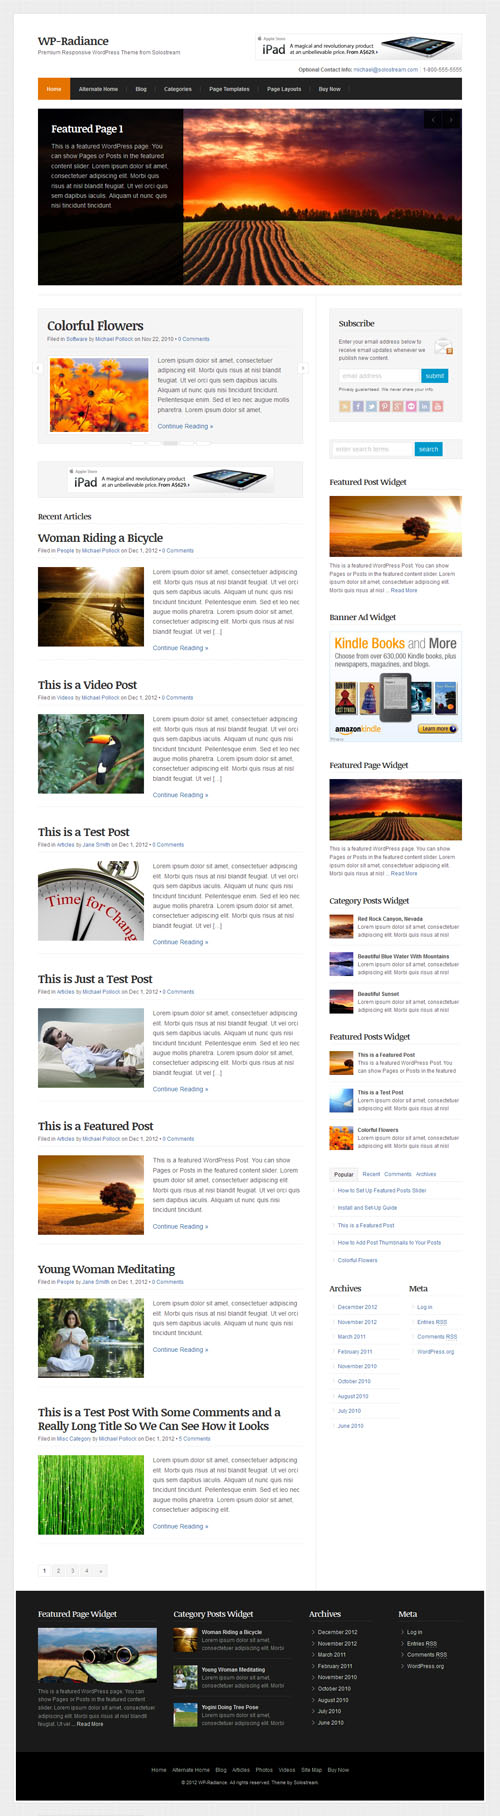 WP Radiance Premium Responsive WordPress Theme